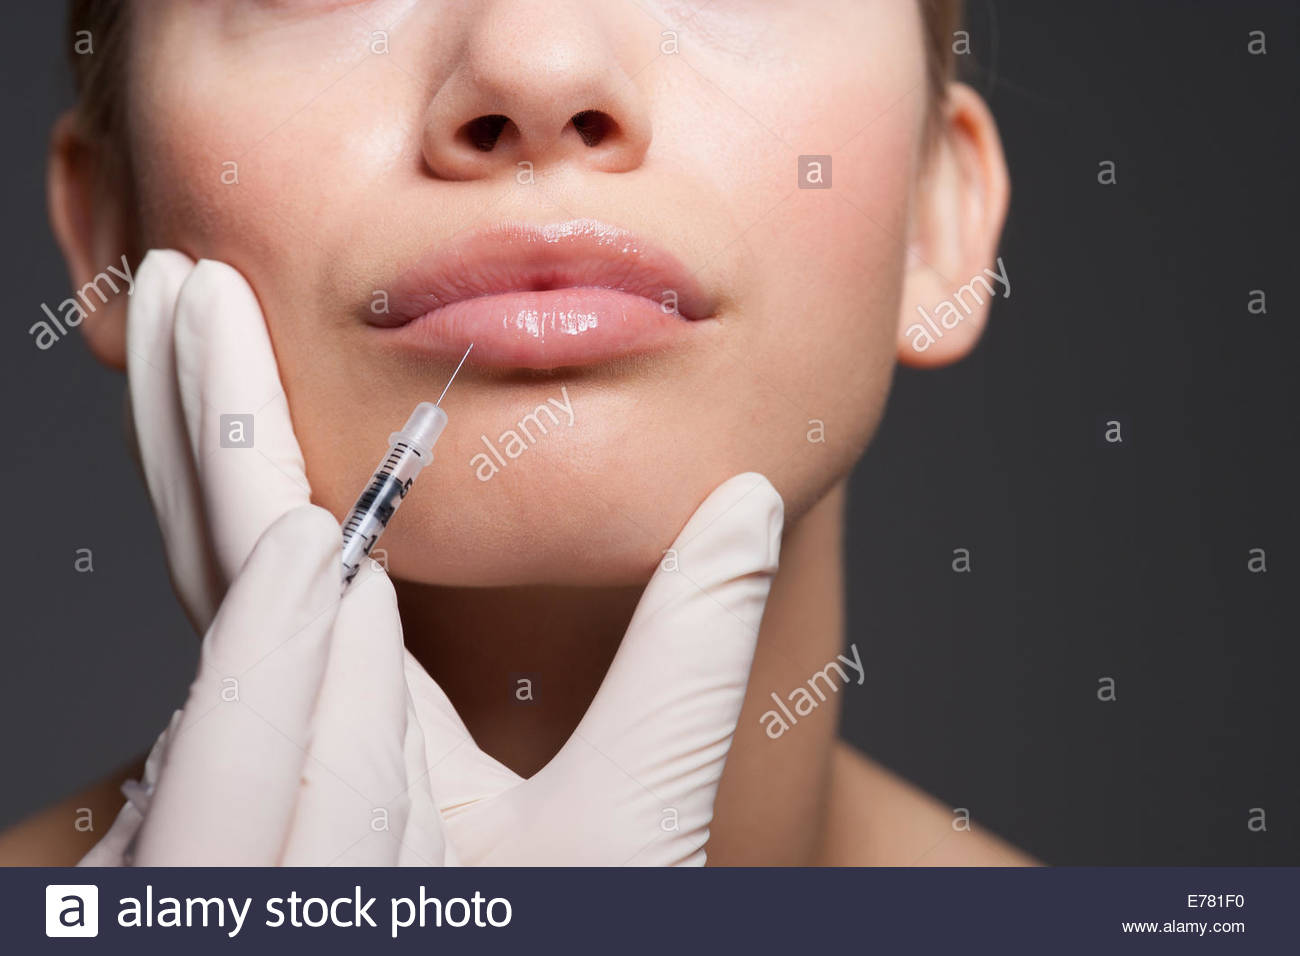 Close up of woman receiving botox Photo Stock